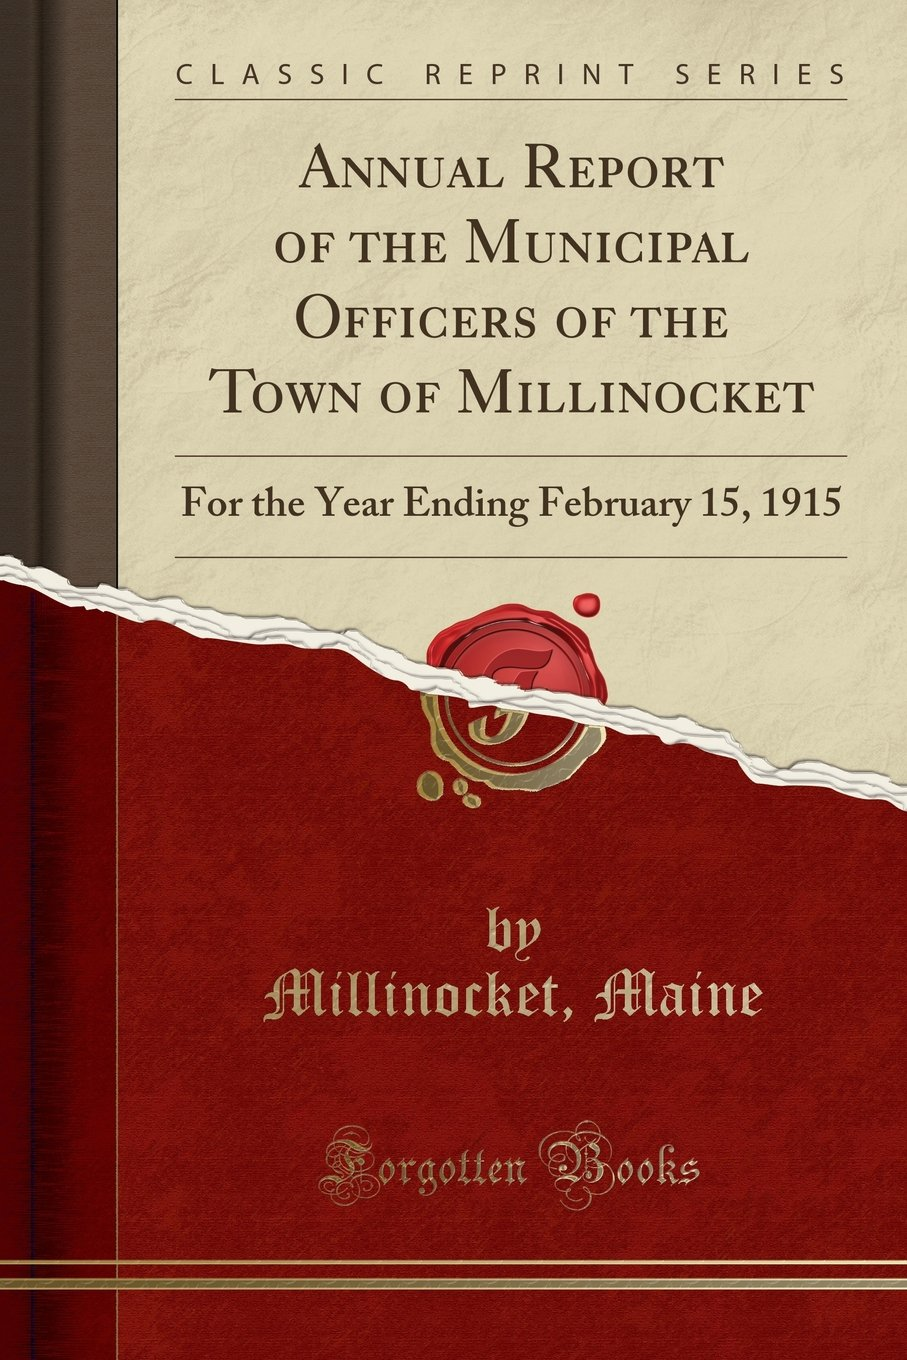 Annual Report of the Municipal Officers of the Town of Millinocket: For the Year Ending February 15, 1915 (Classic Reprint) pdf